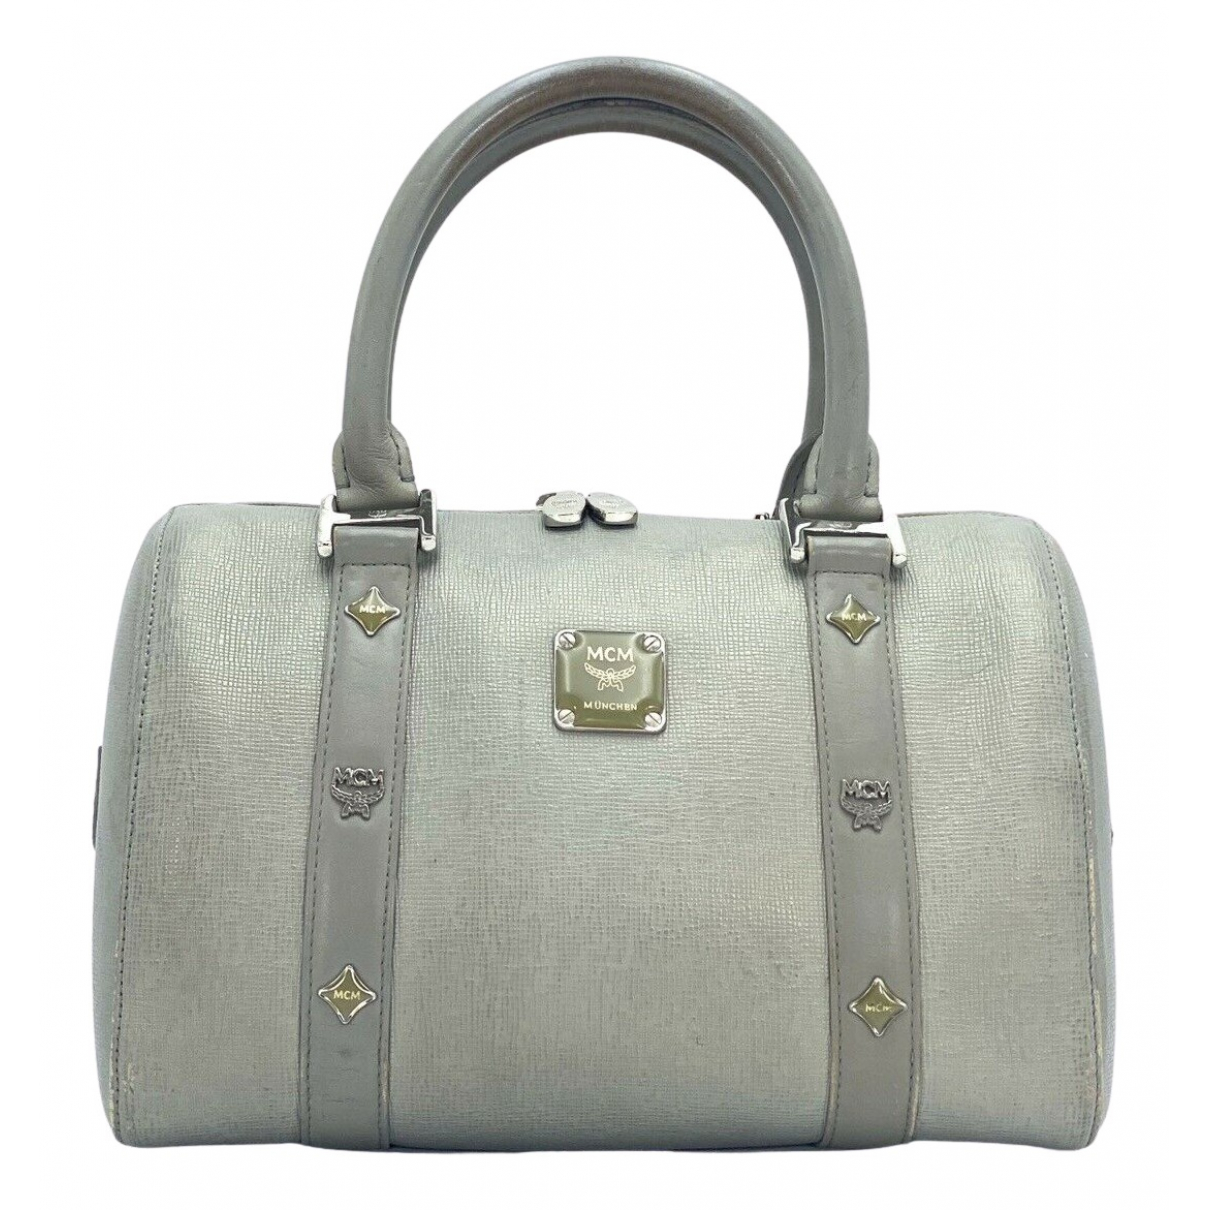 Mcm Boston Grey Leather handbag for Women N